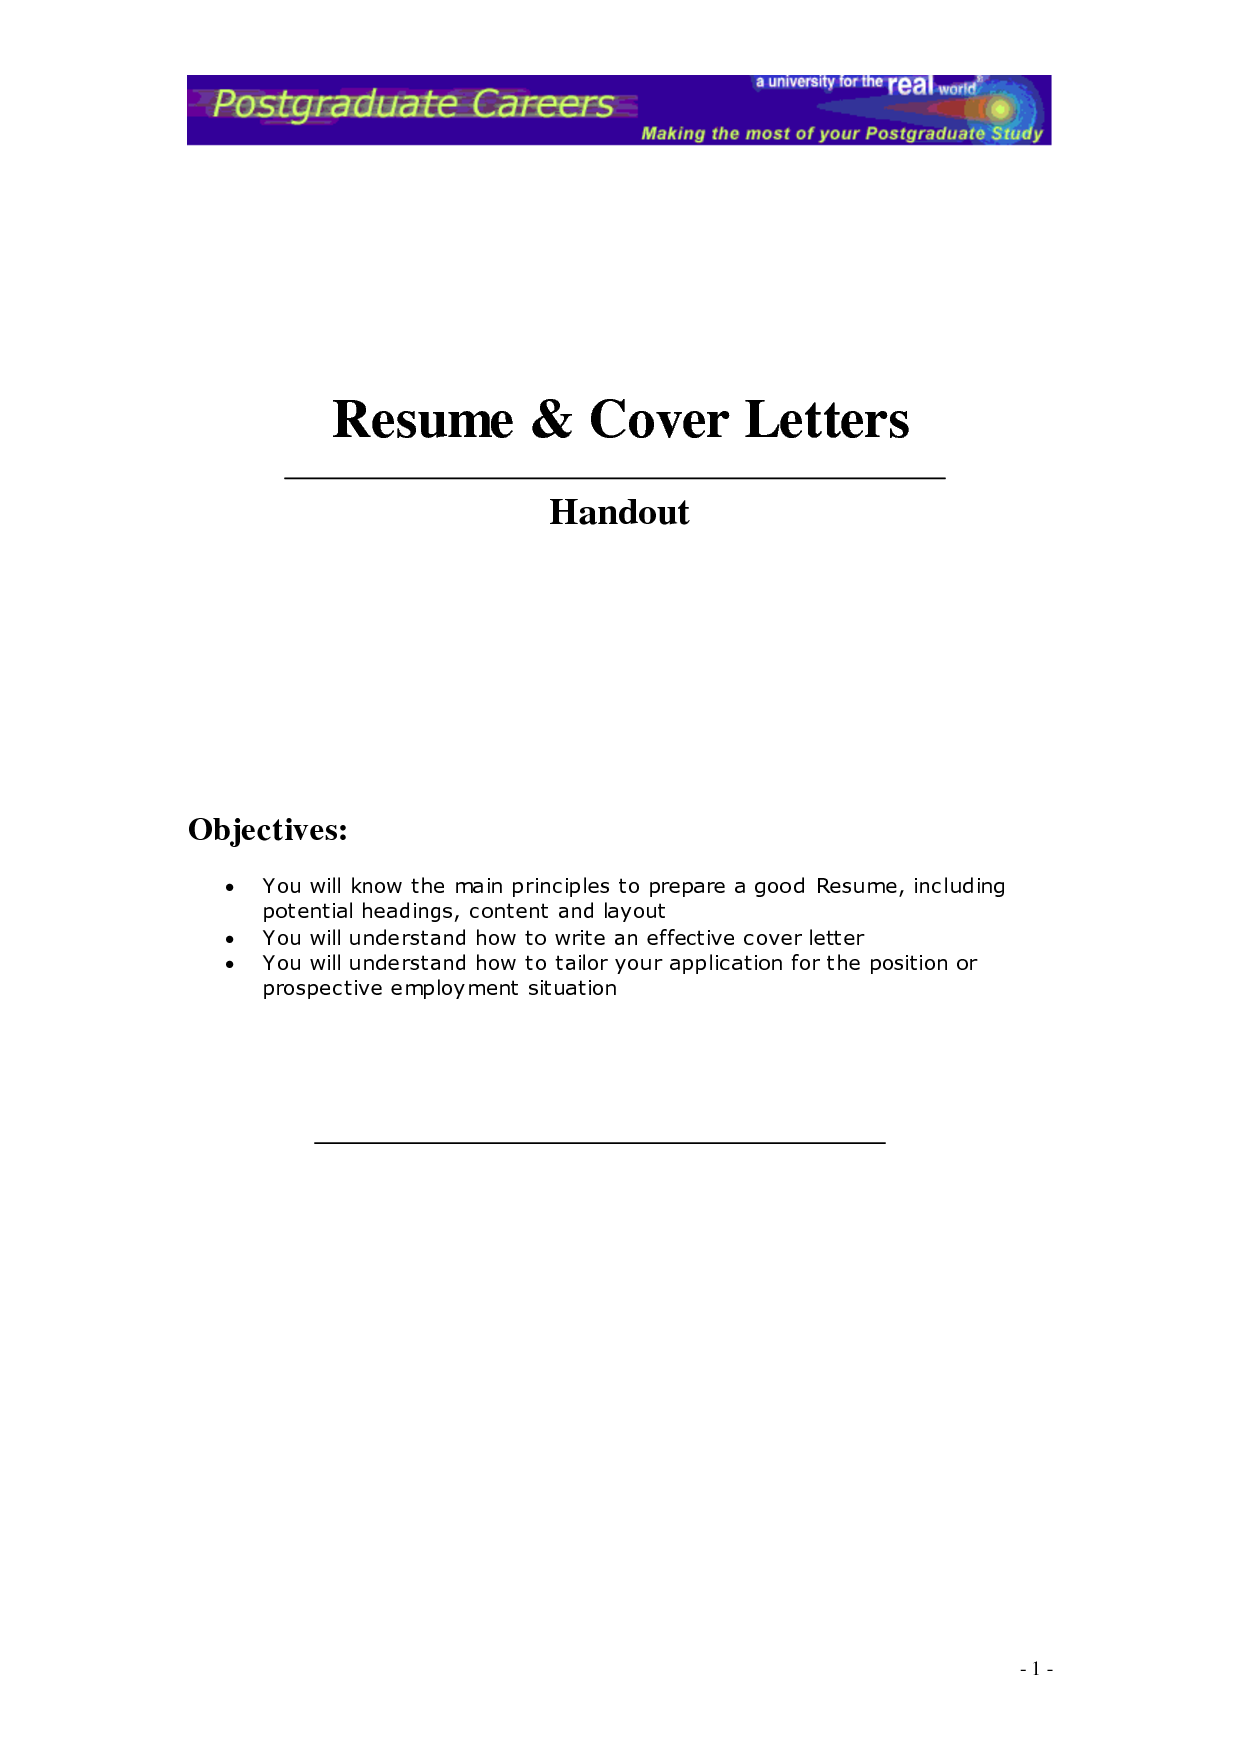 003 how to make cover page resume letter sample format with date and address example do you for